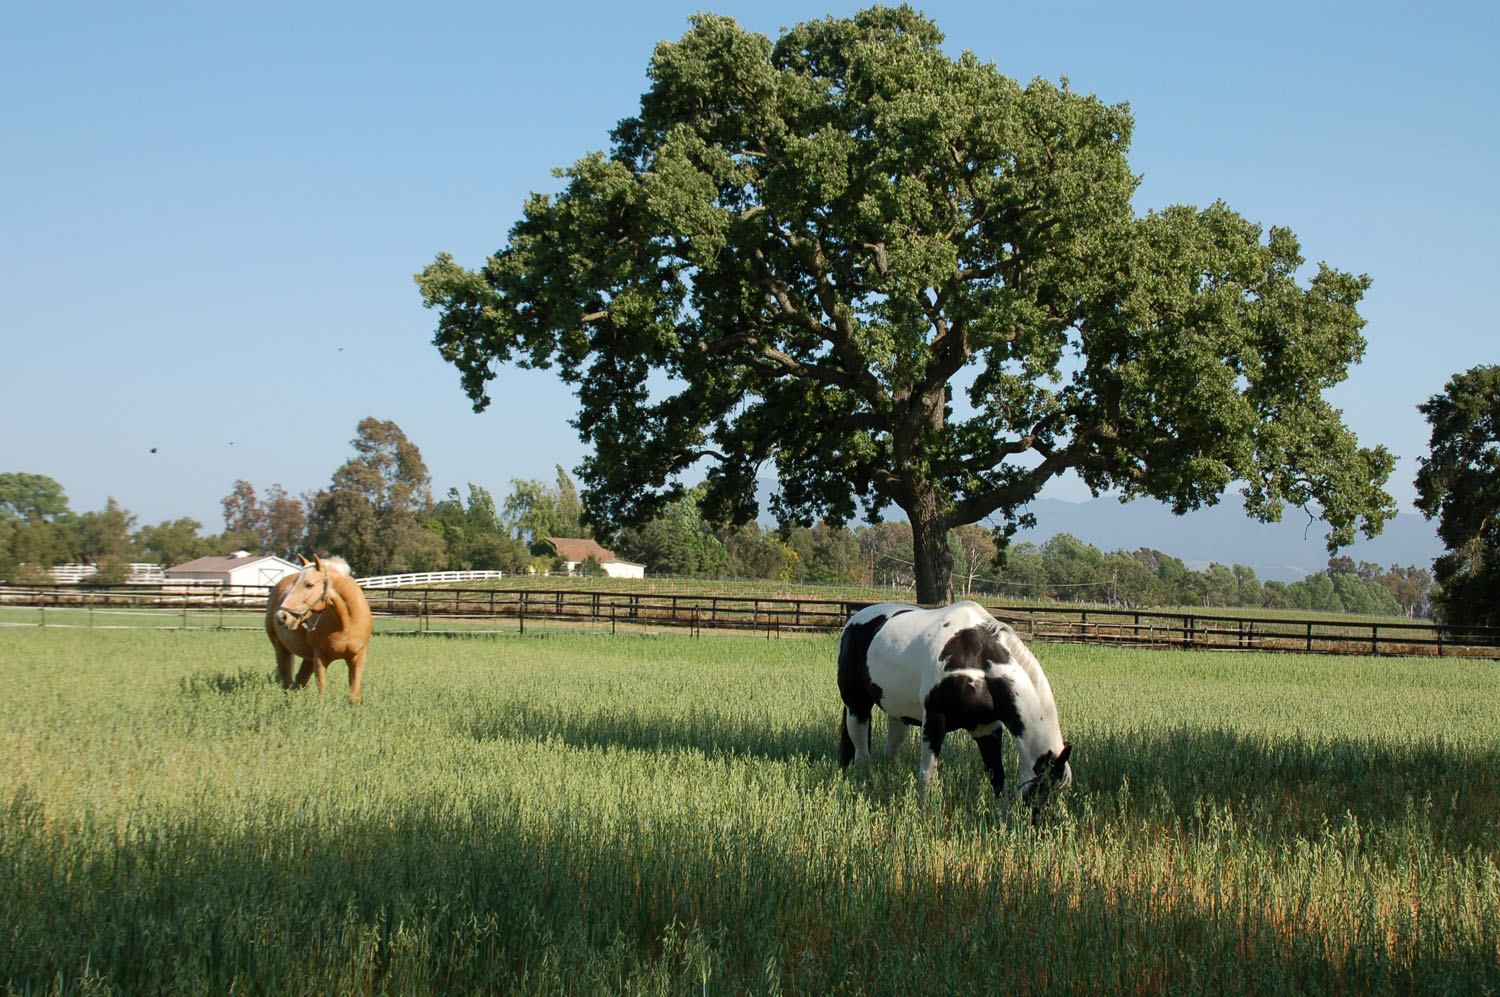 Two of our horses, Oro and Domino enjoying grass pasture made lush by the winter and spring rains.